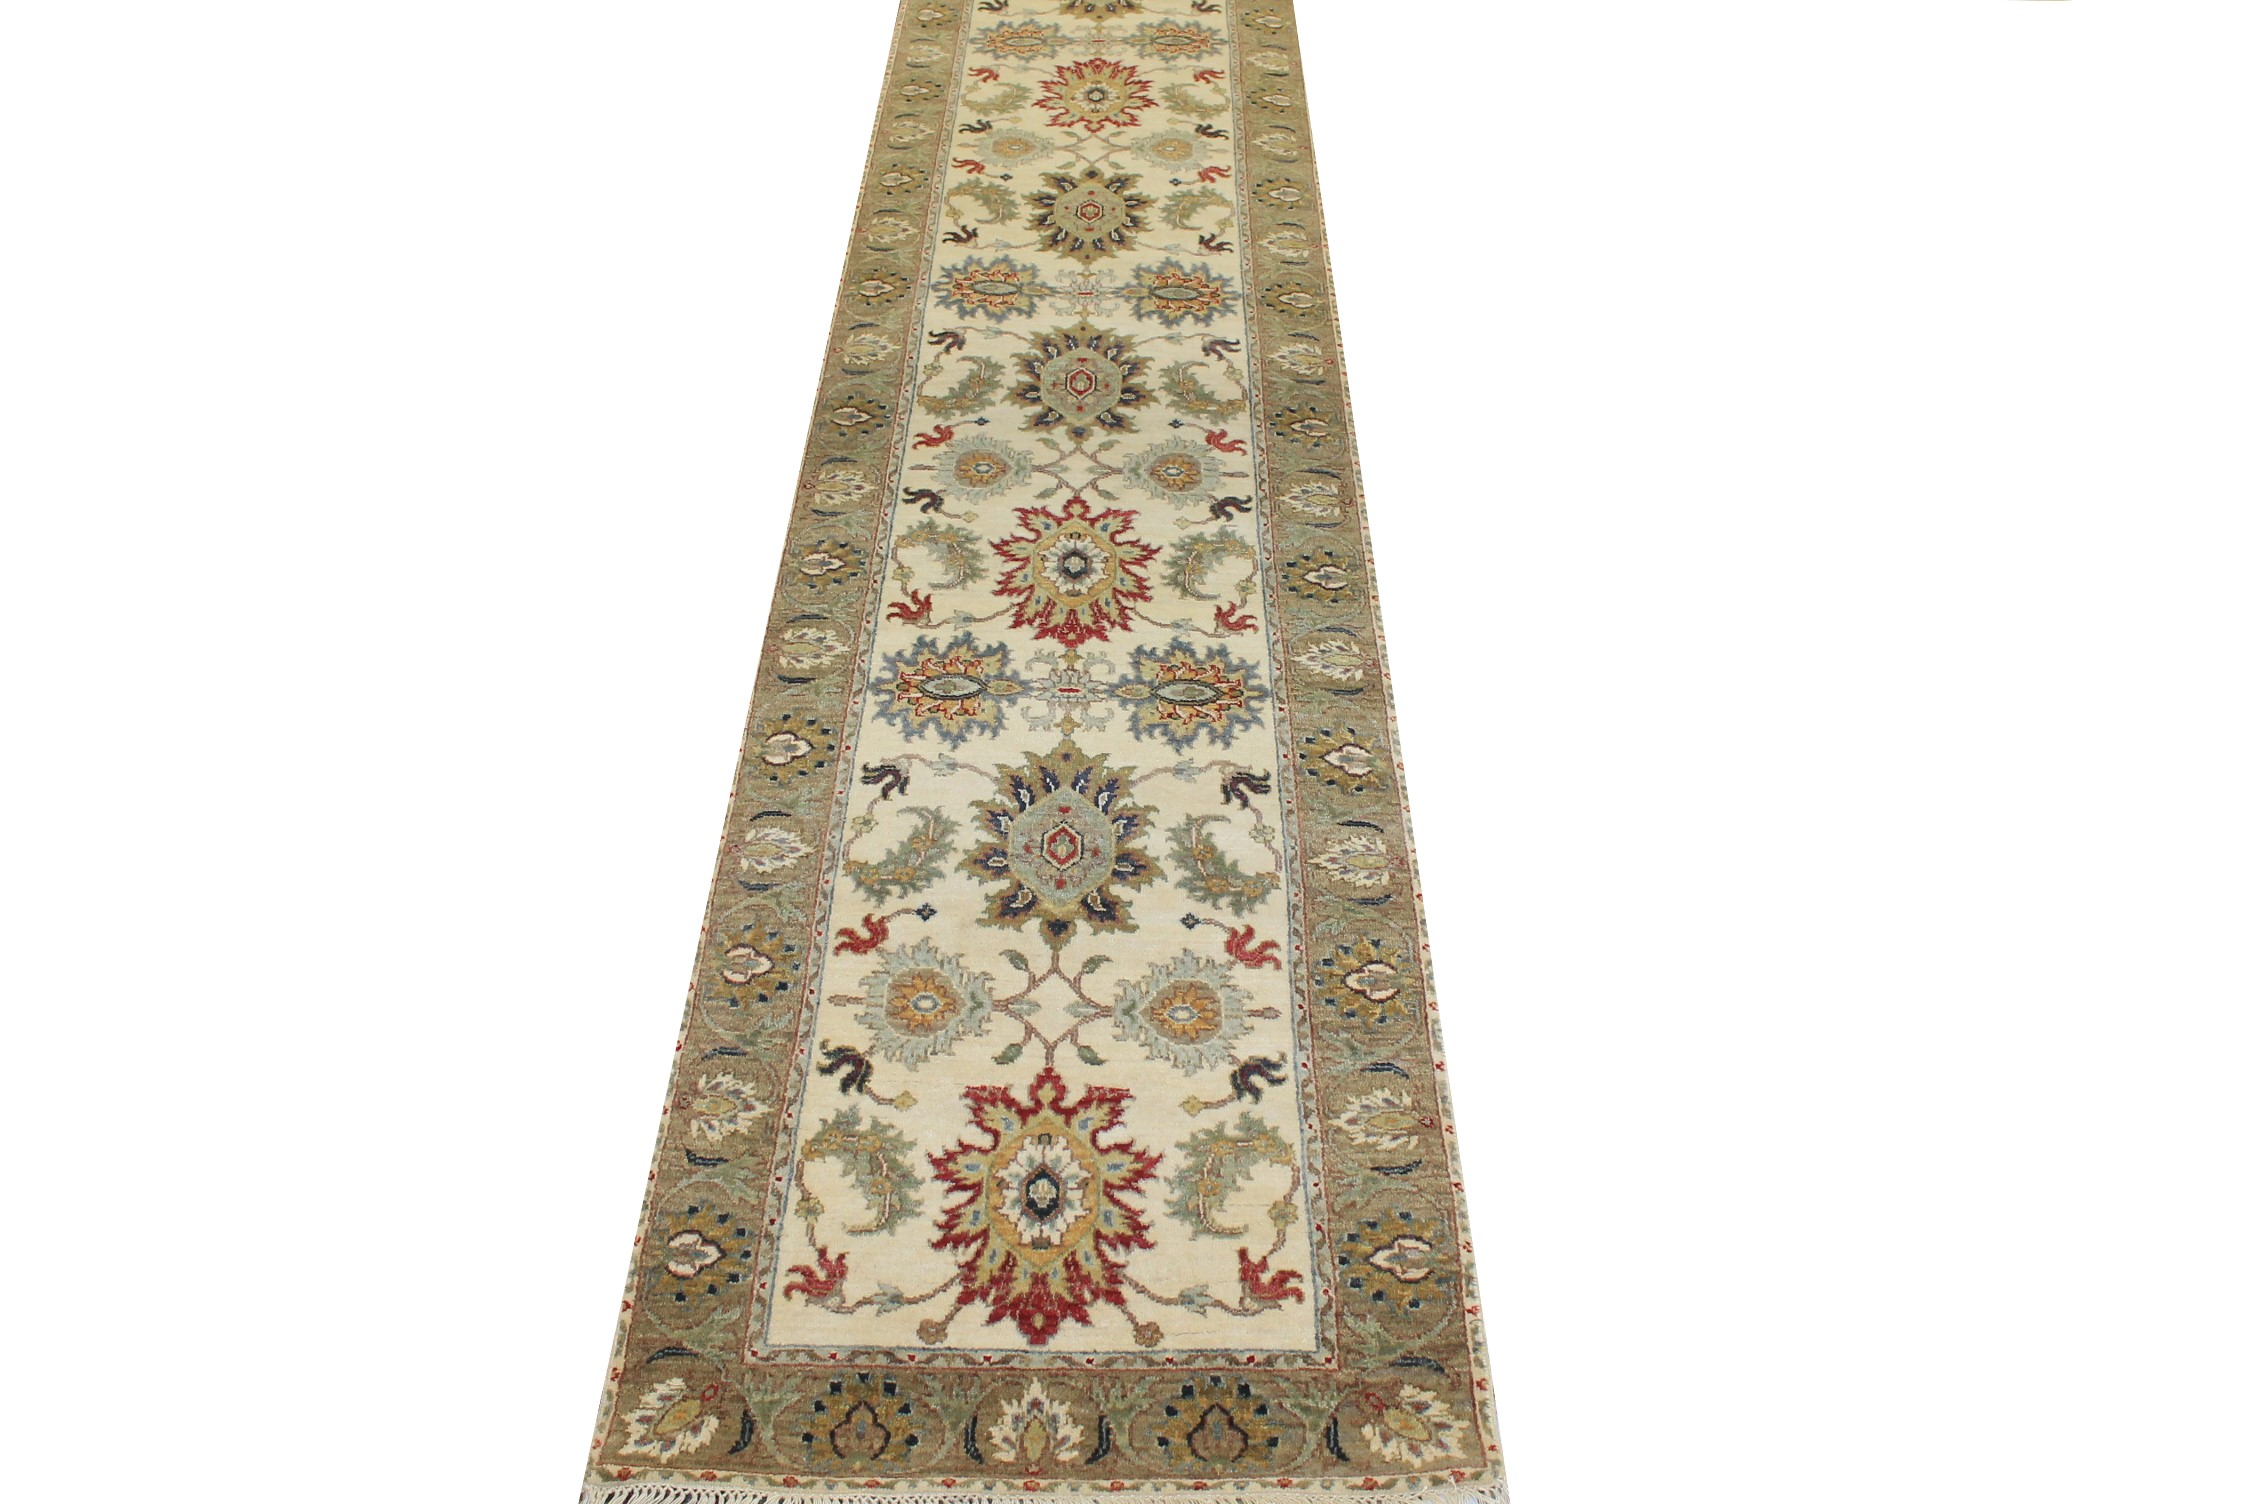 12 ft. Runner Traditional Hand Knotted Wool Area Rug - MR025052